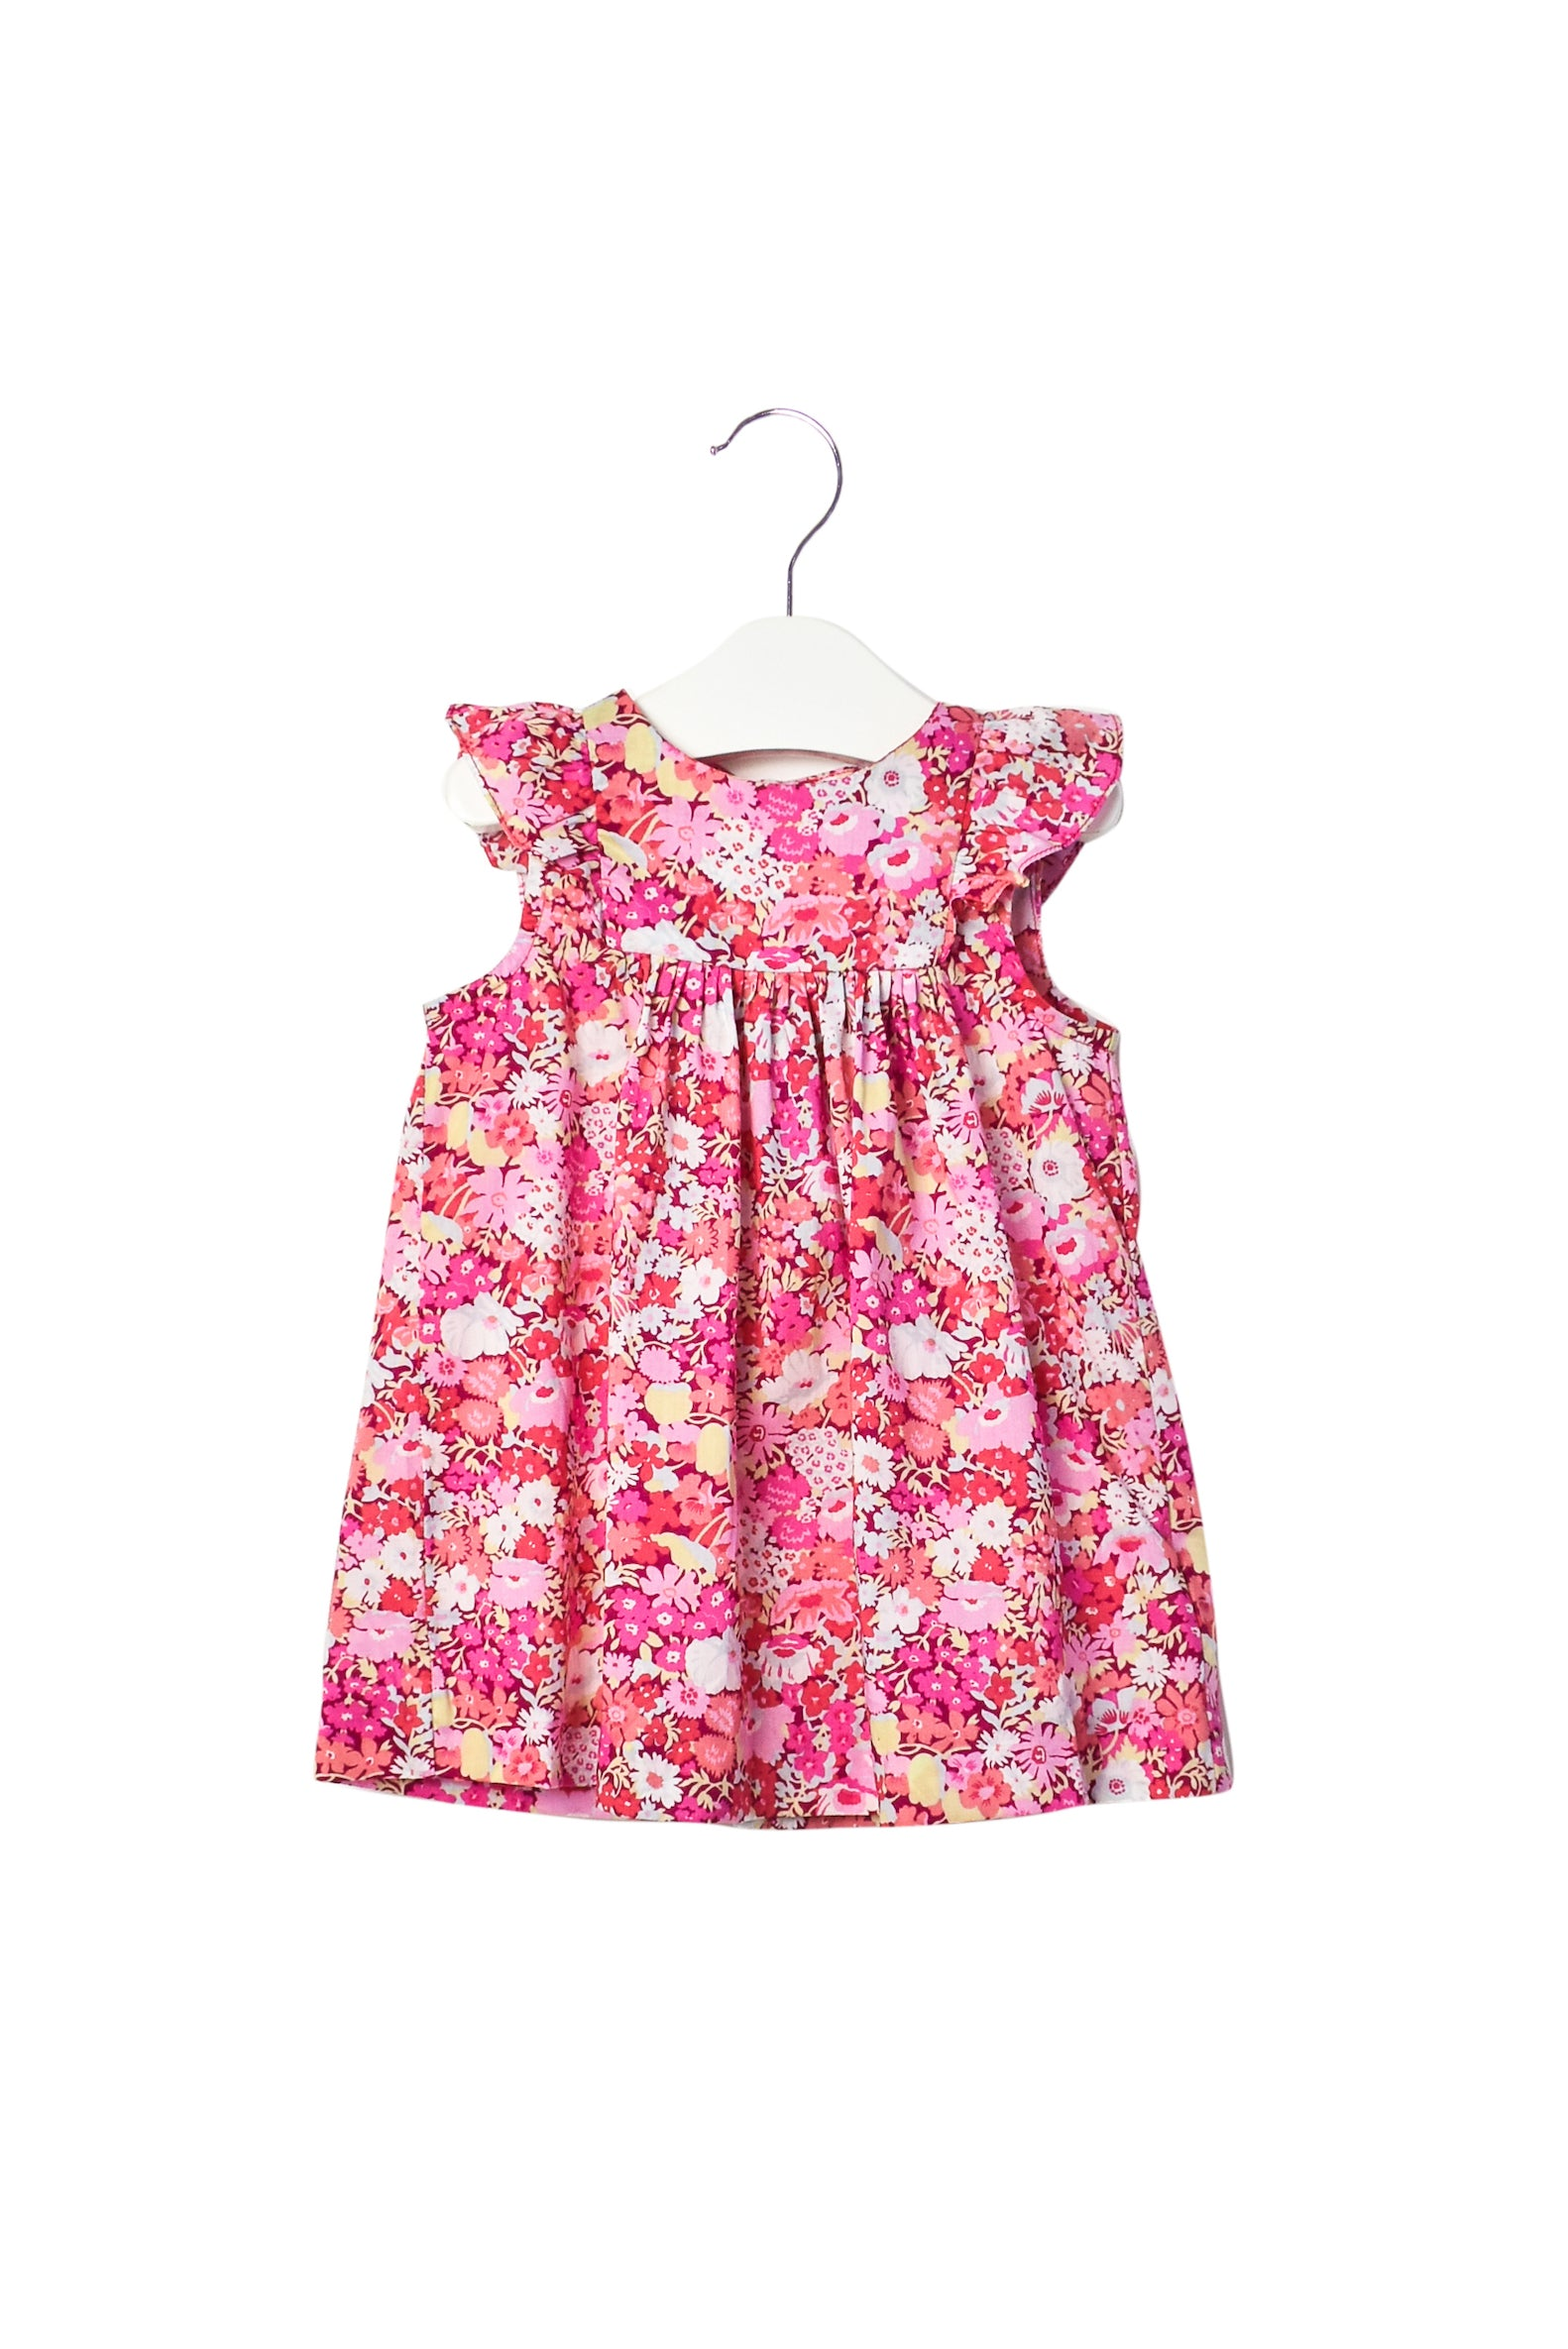 10006546 Jacadi Baby~Dress 6M at Retykle